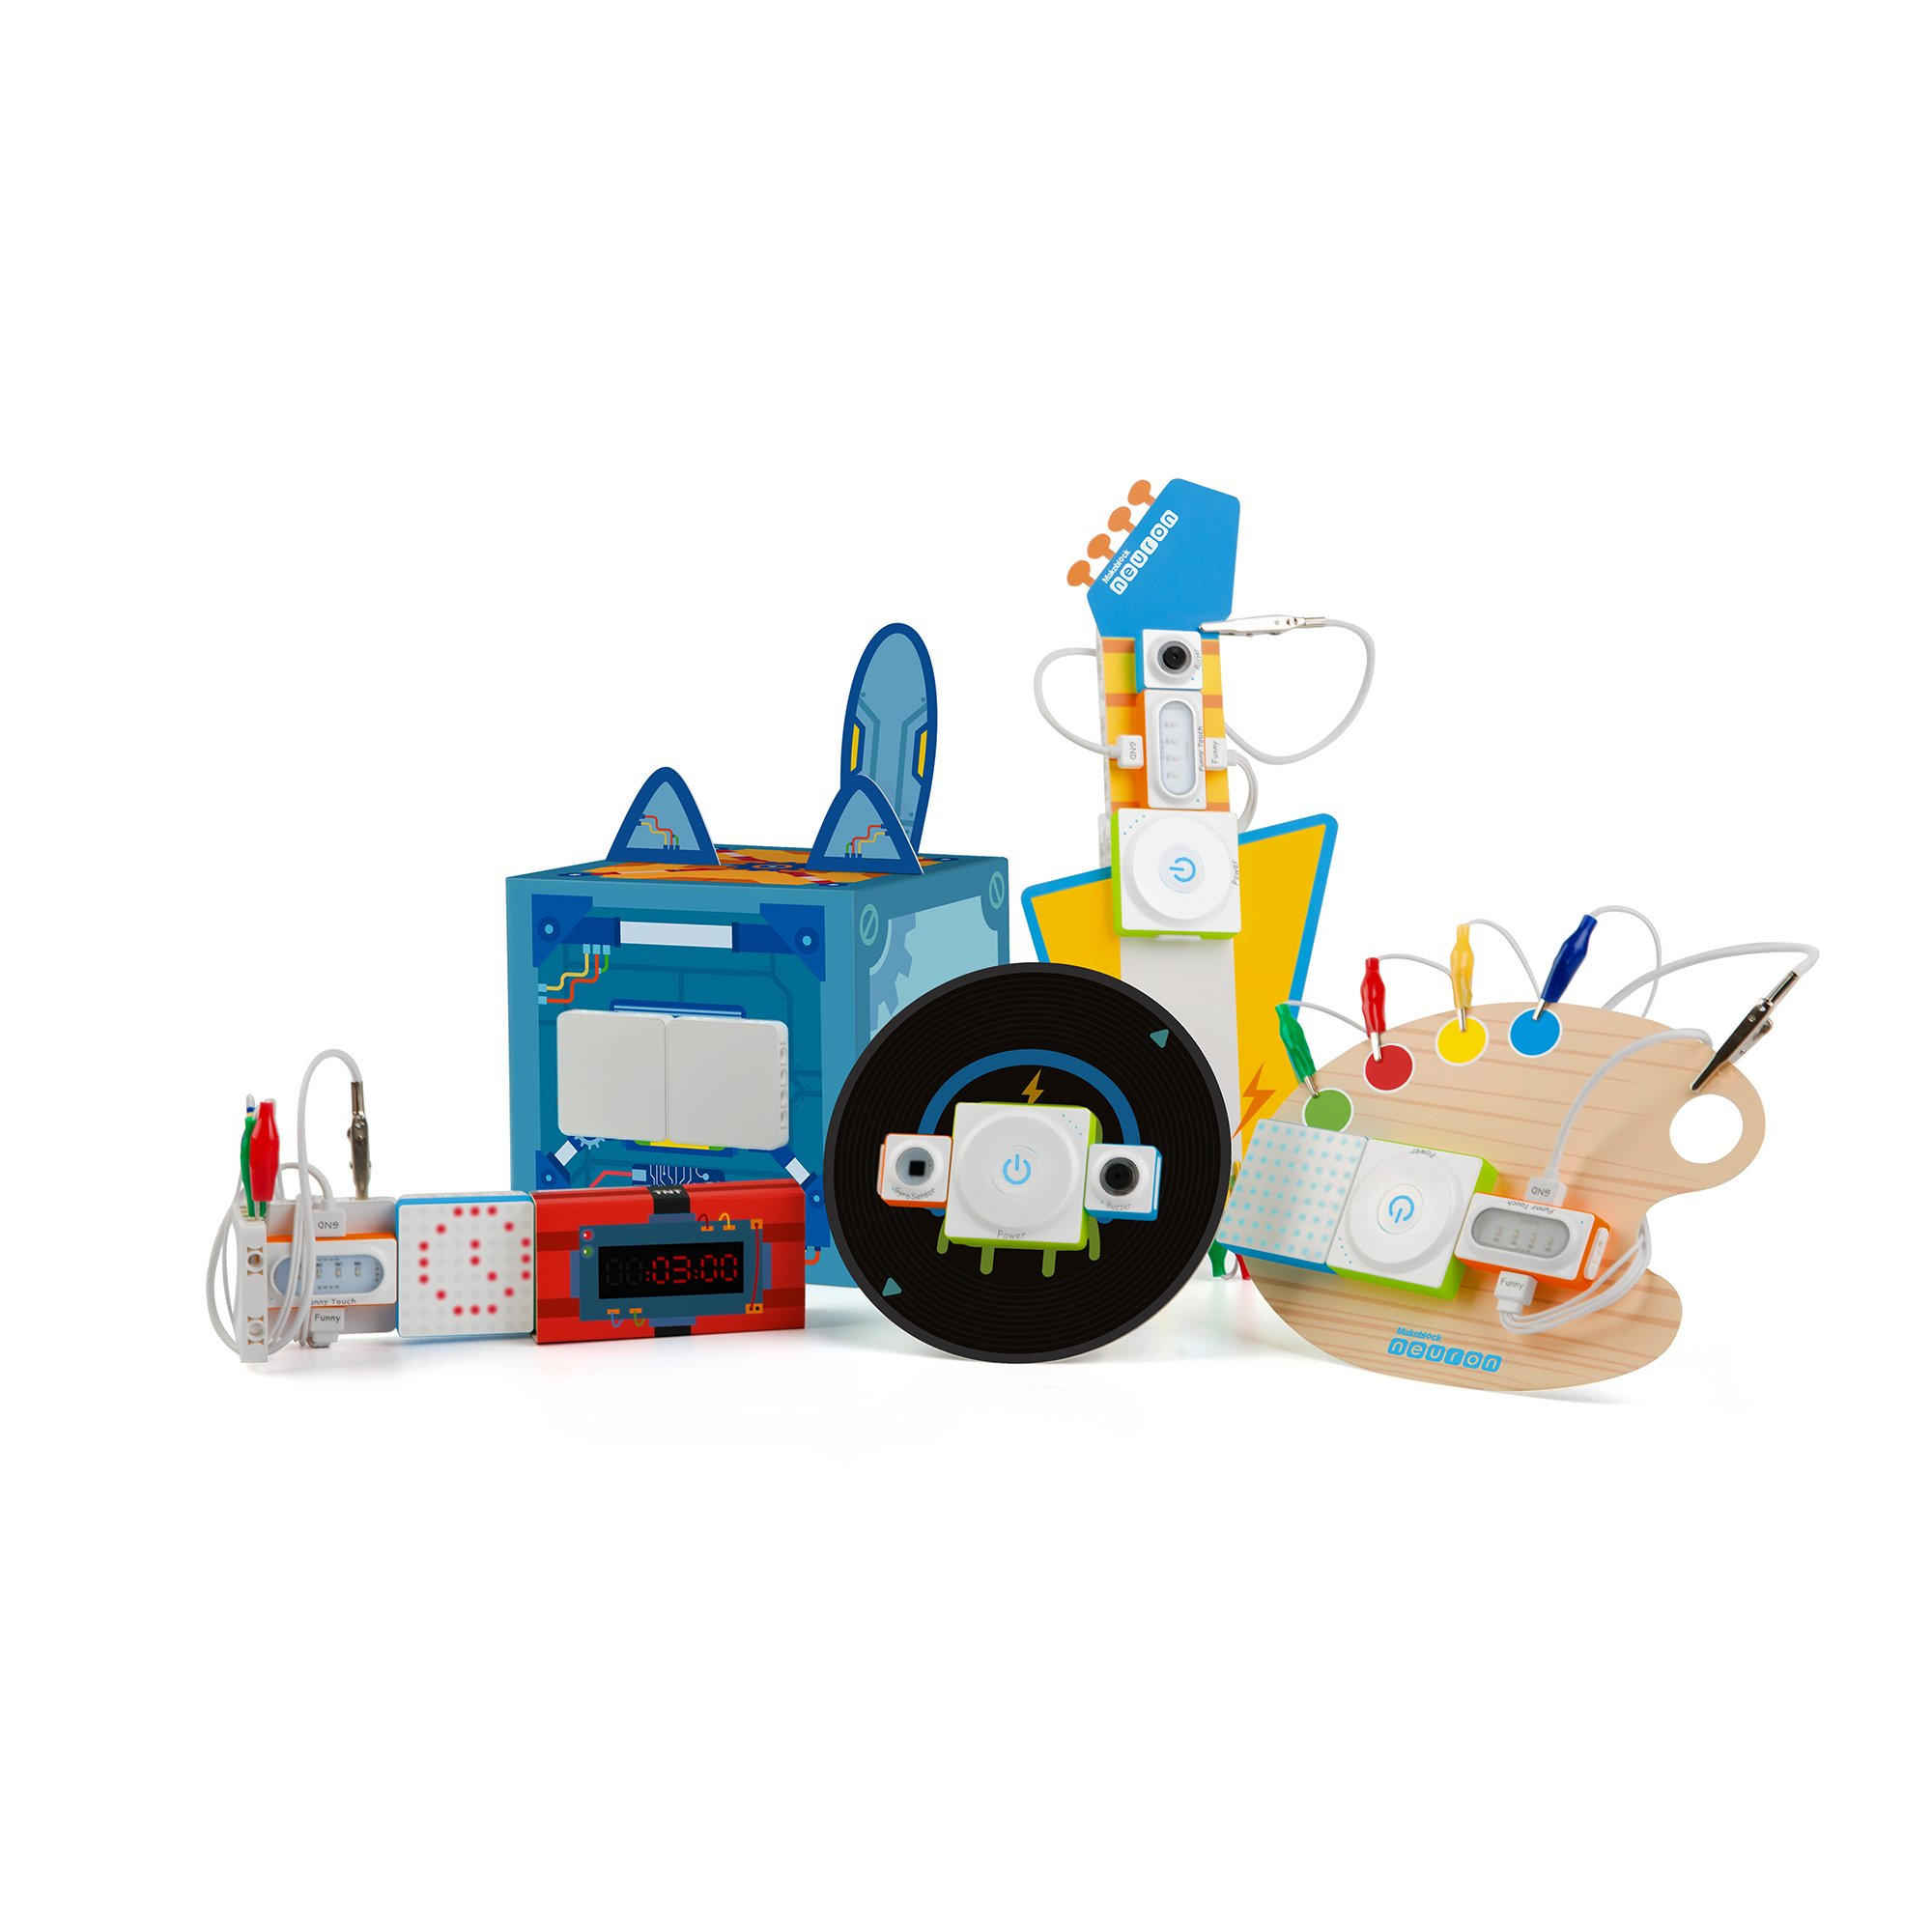 Makeblock Neuron Inventor Kit, STEAM Education, Graphical Programming, Magnetic Pogo Pins for 6 Year & up Kids+ with 6 Basic Blocks, Over 10 Kinds of Funny Robots, Like Rabbit,Dashing Raptor